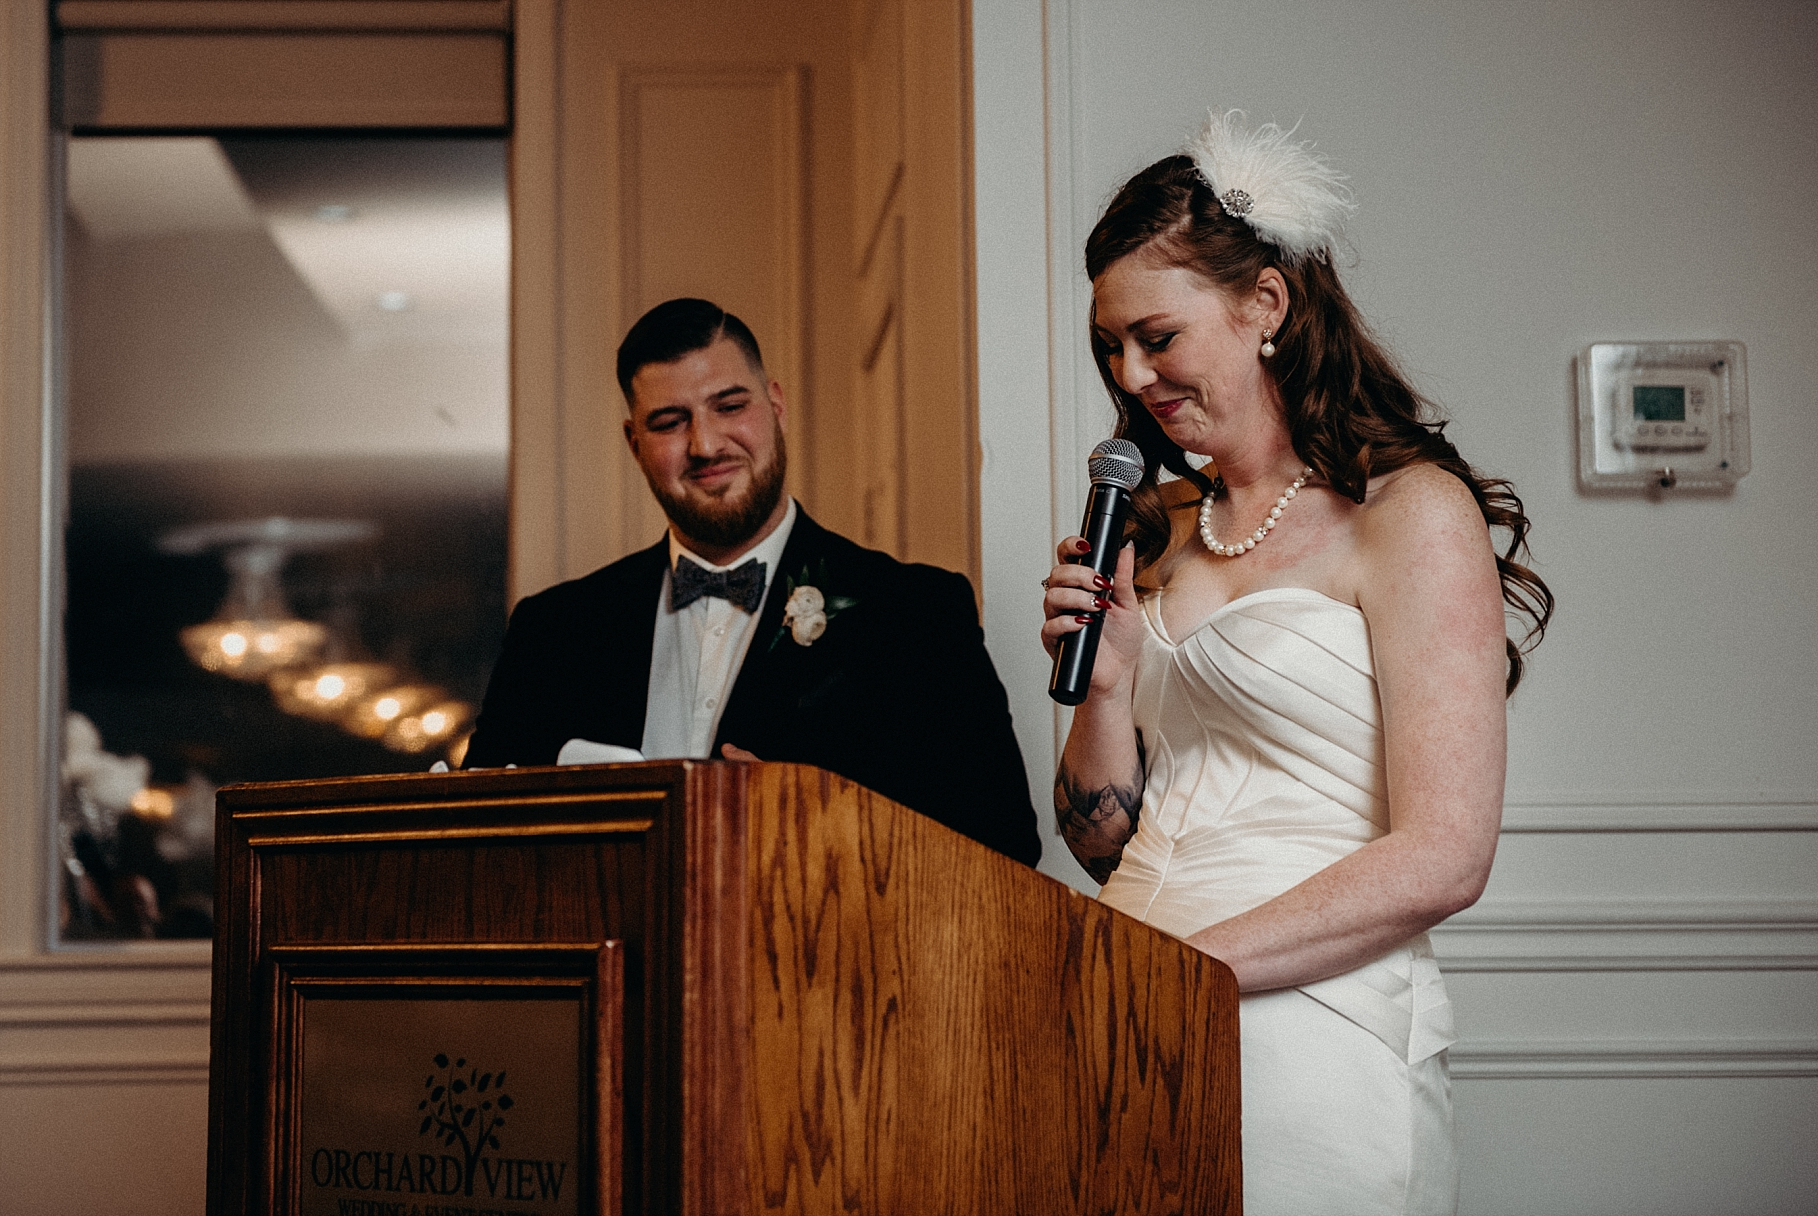 Orchard View Wedding by Mocha Tree Studios Ottawa Wedding and Engagement Photographer and Videographer Dark Moody Intimate Authentic Modern Romantic Cinematic Best Candid 32